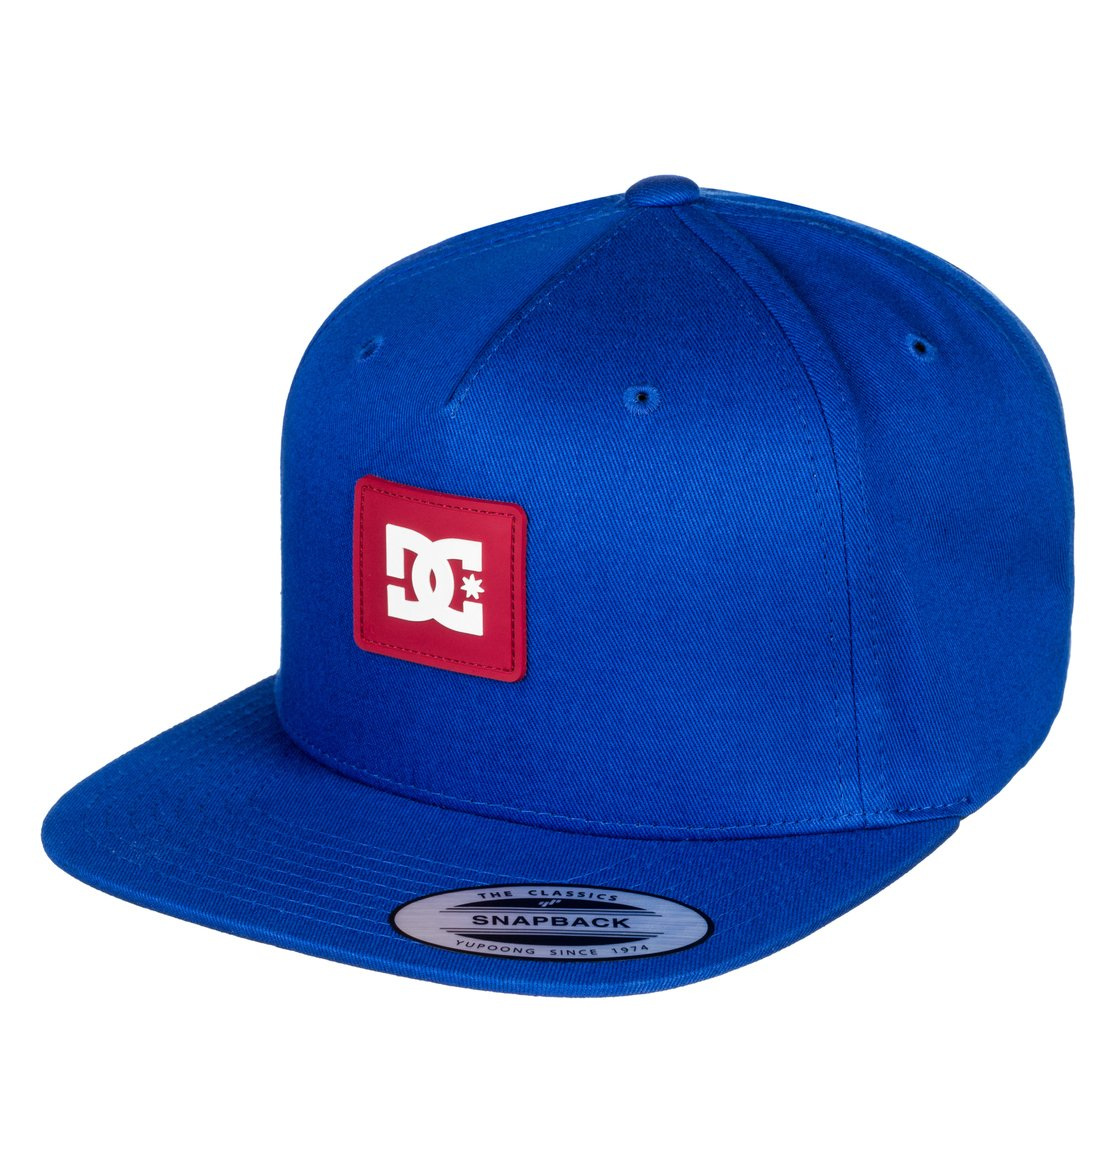 0 Snapdoodle - Cappellino snapback da Ragazzo 8-16 Blue ADBHA03070 DC Shoes 172d898f2204